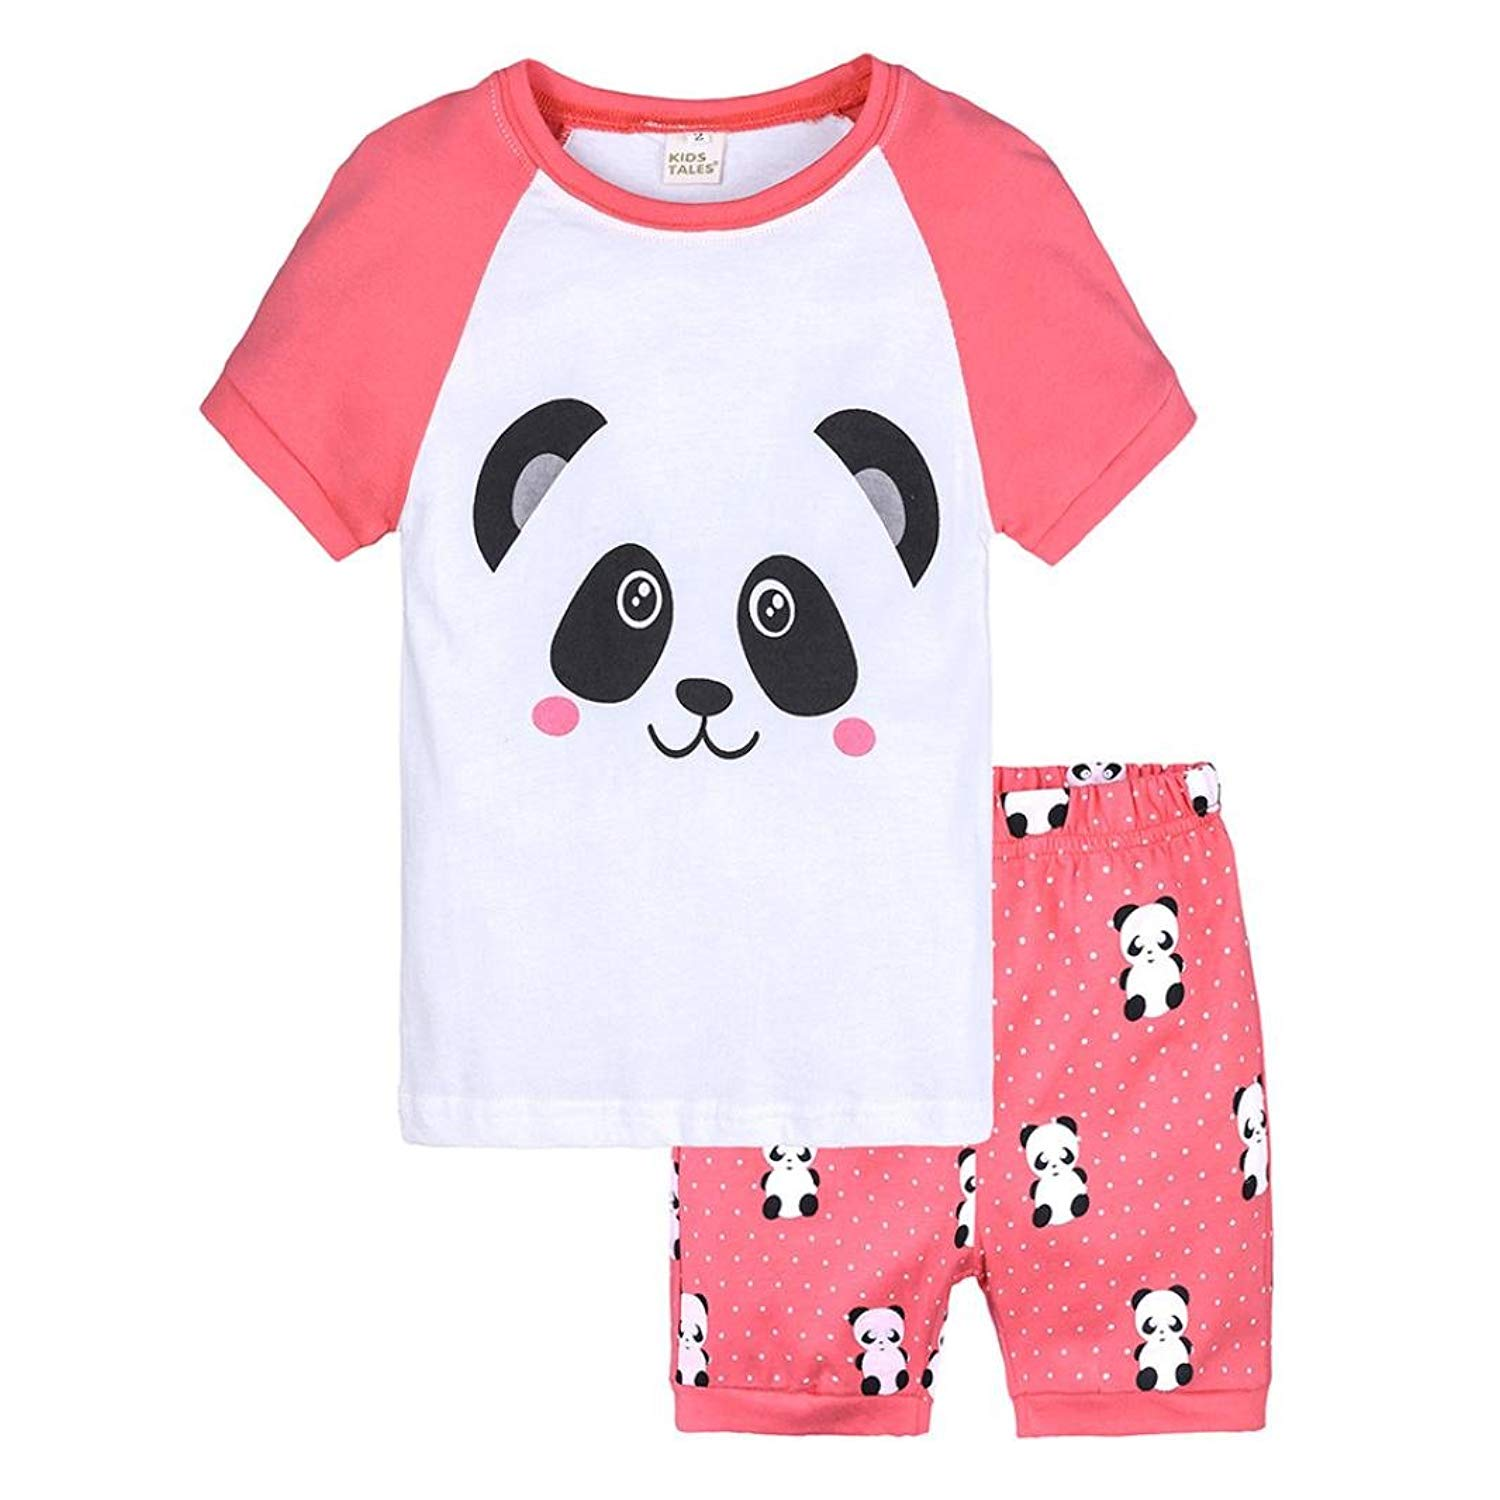 60da04c217b Get Quotations · Toddler Clothes